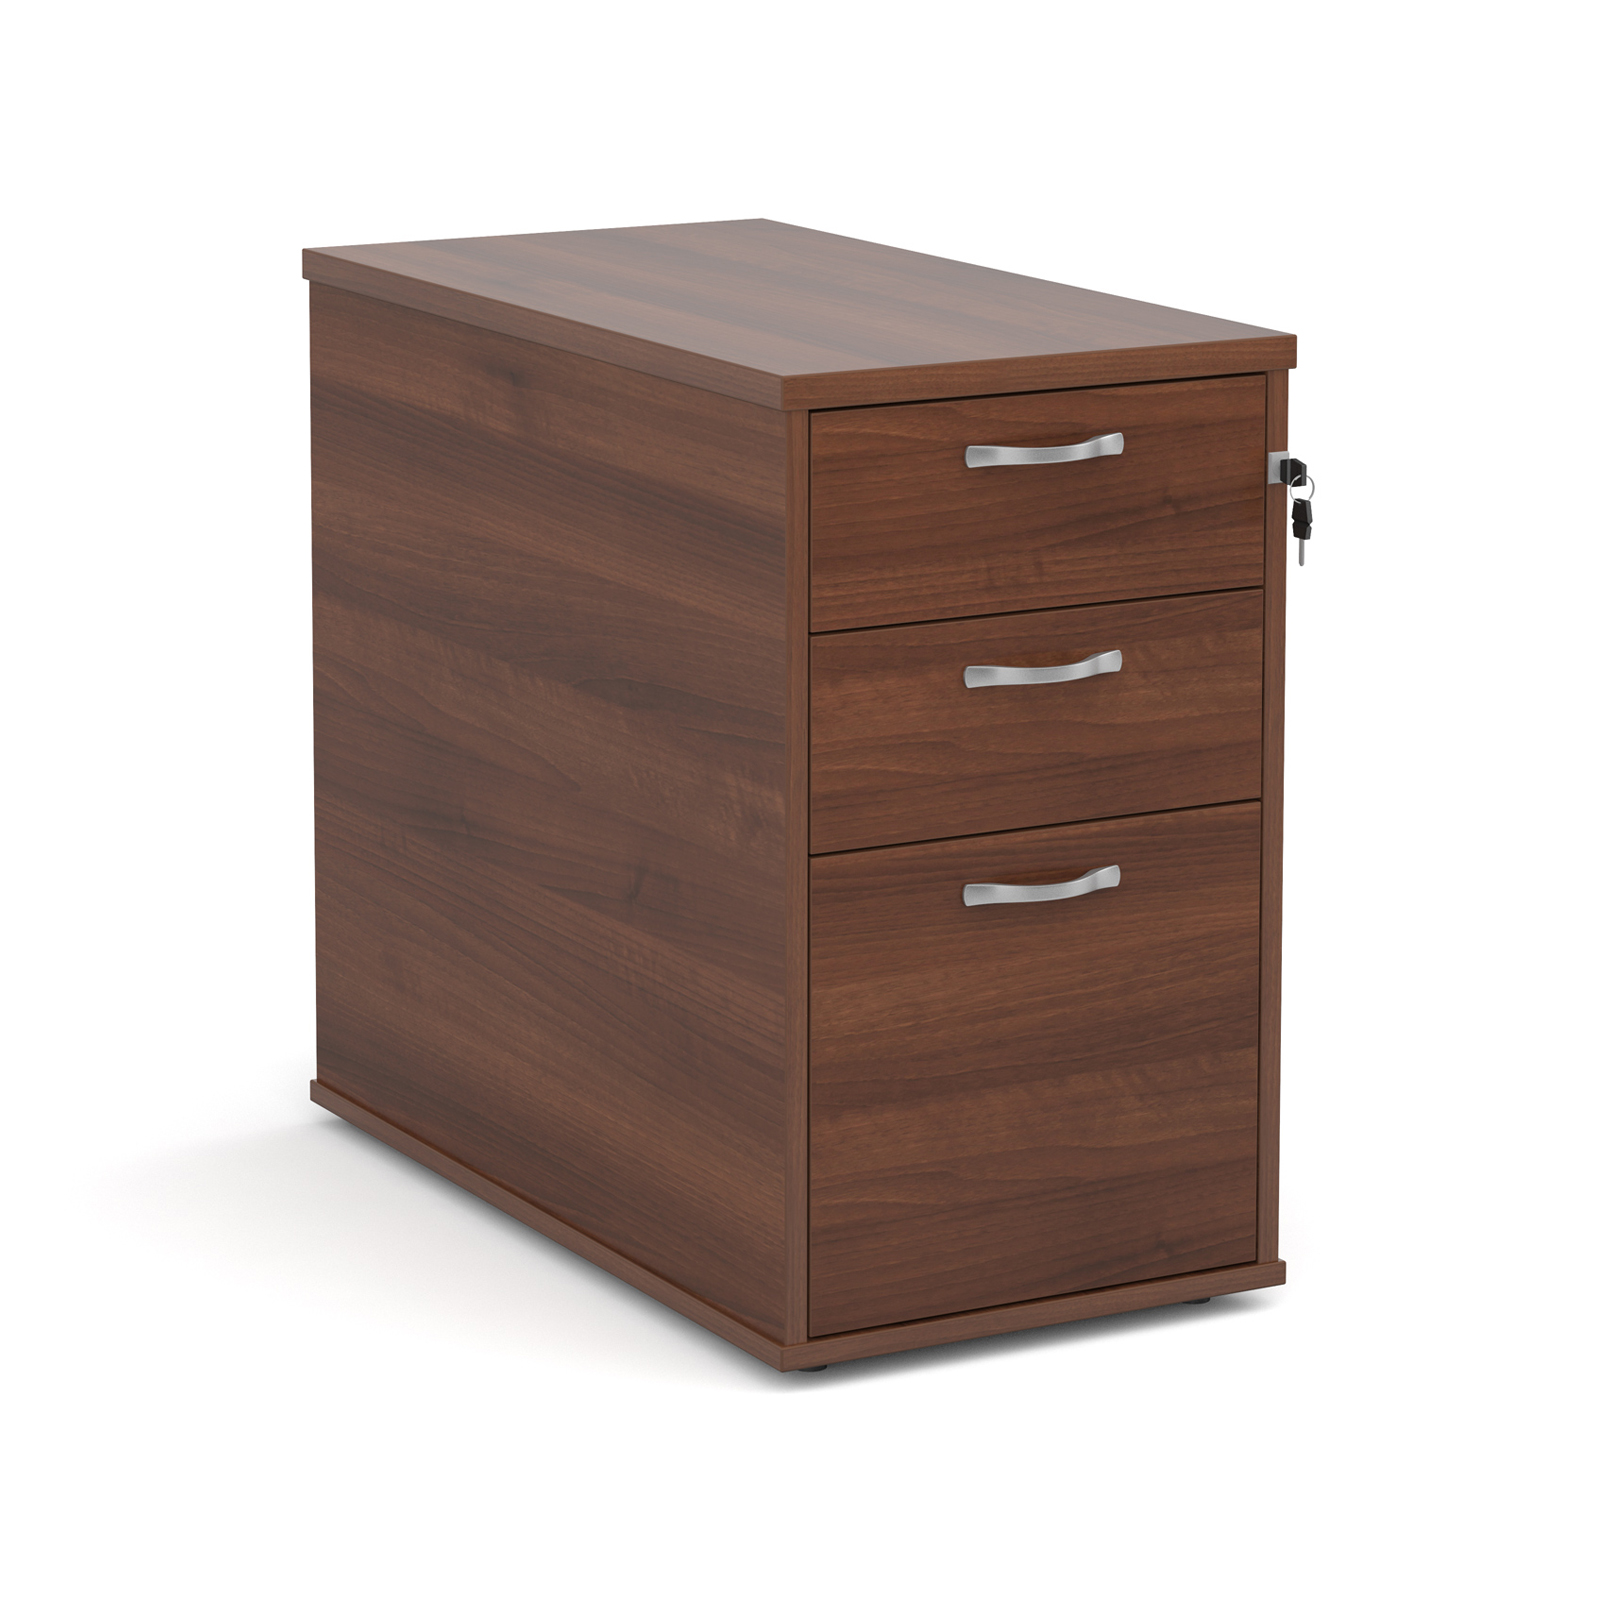 Desk high 3 drawer pedestal with silver handles 800mm deep - walnut